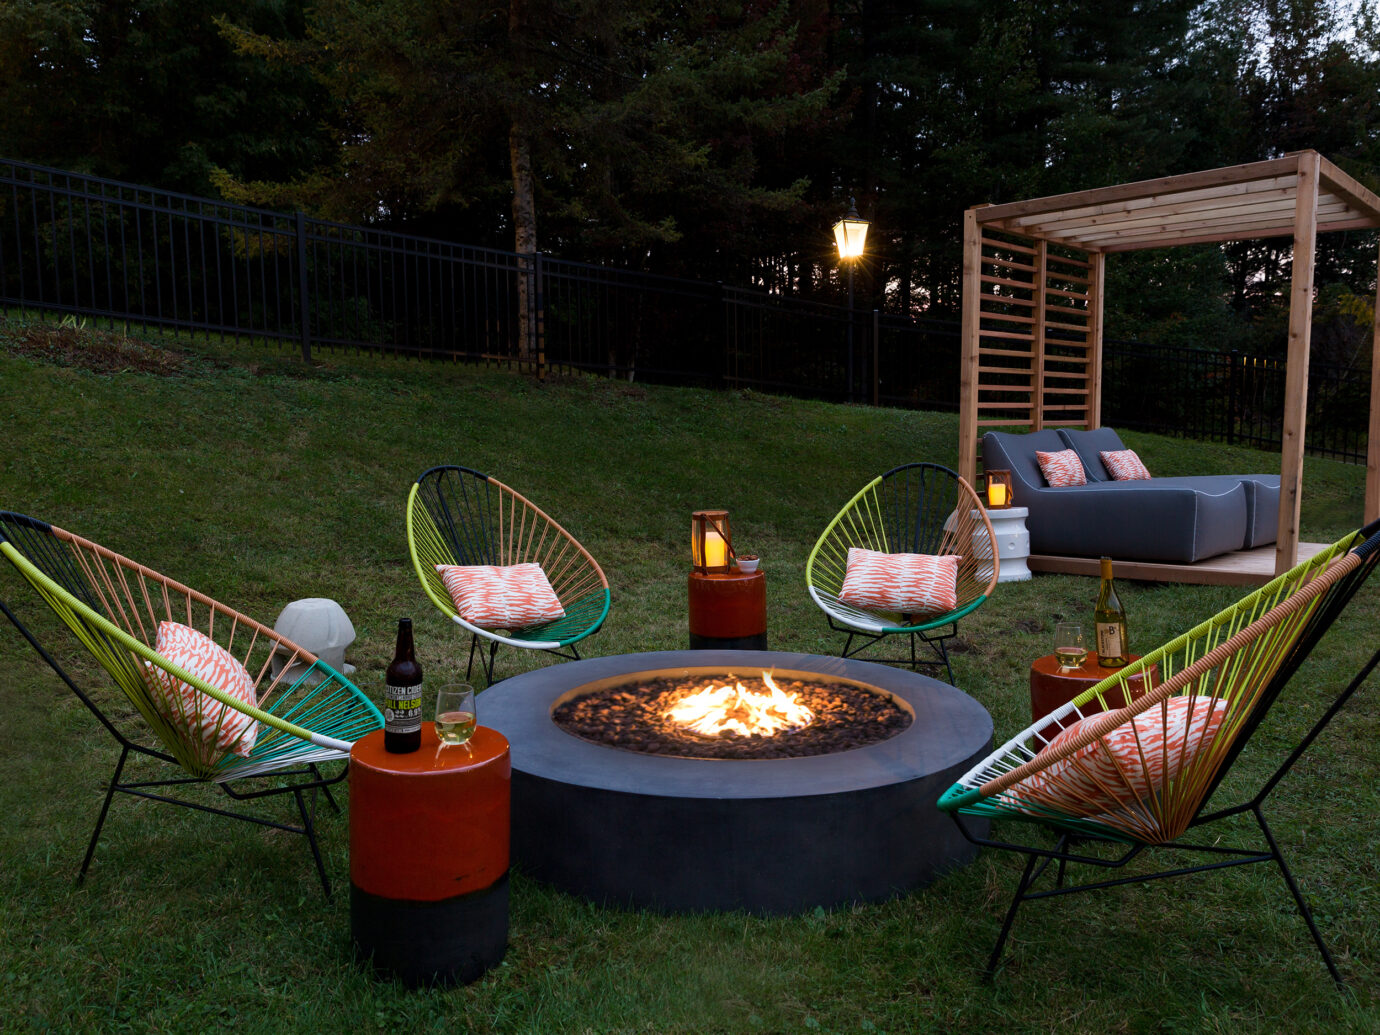 Firepit at Field Guide Lodge, Stowe, VT